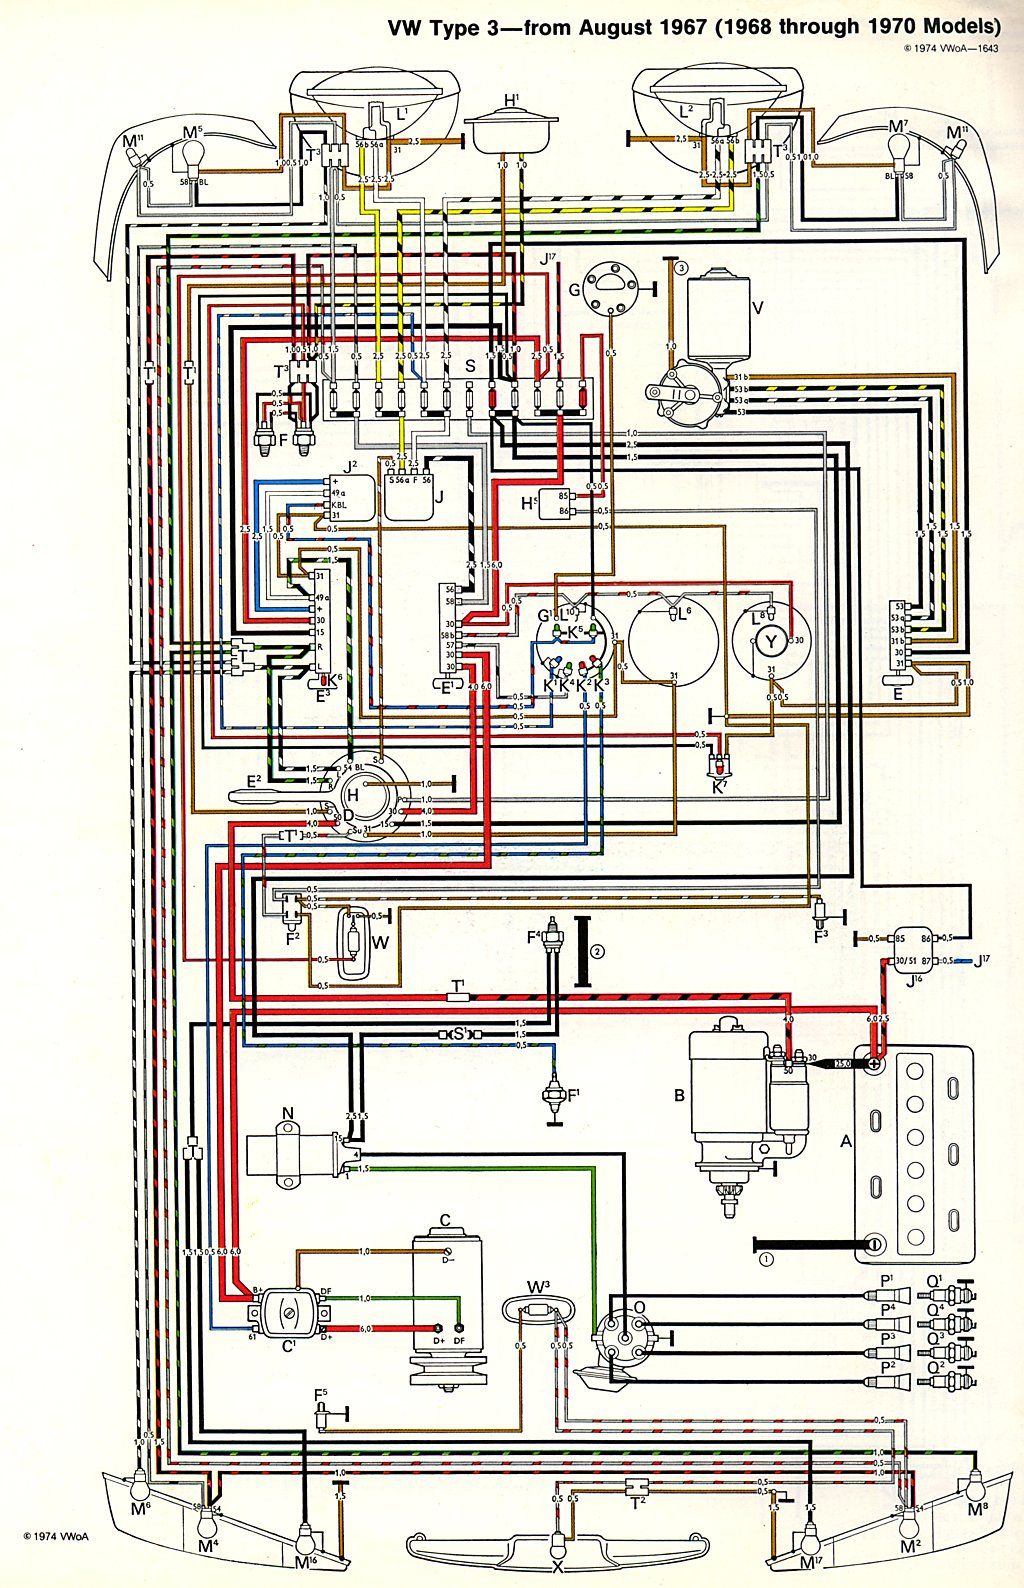 type3_6870 wiring harness 1968 vw bus wiring diagram at bakdesigns.co